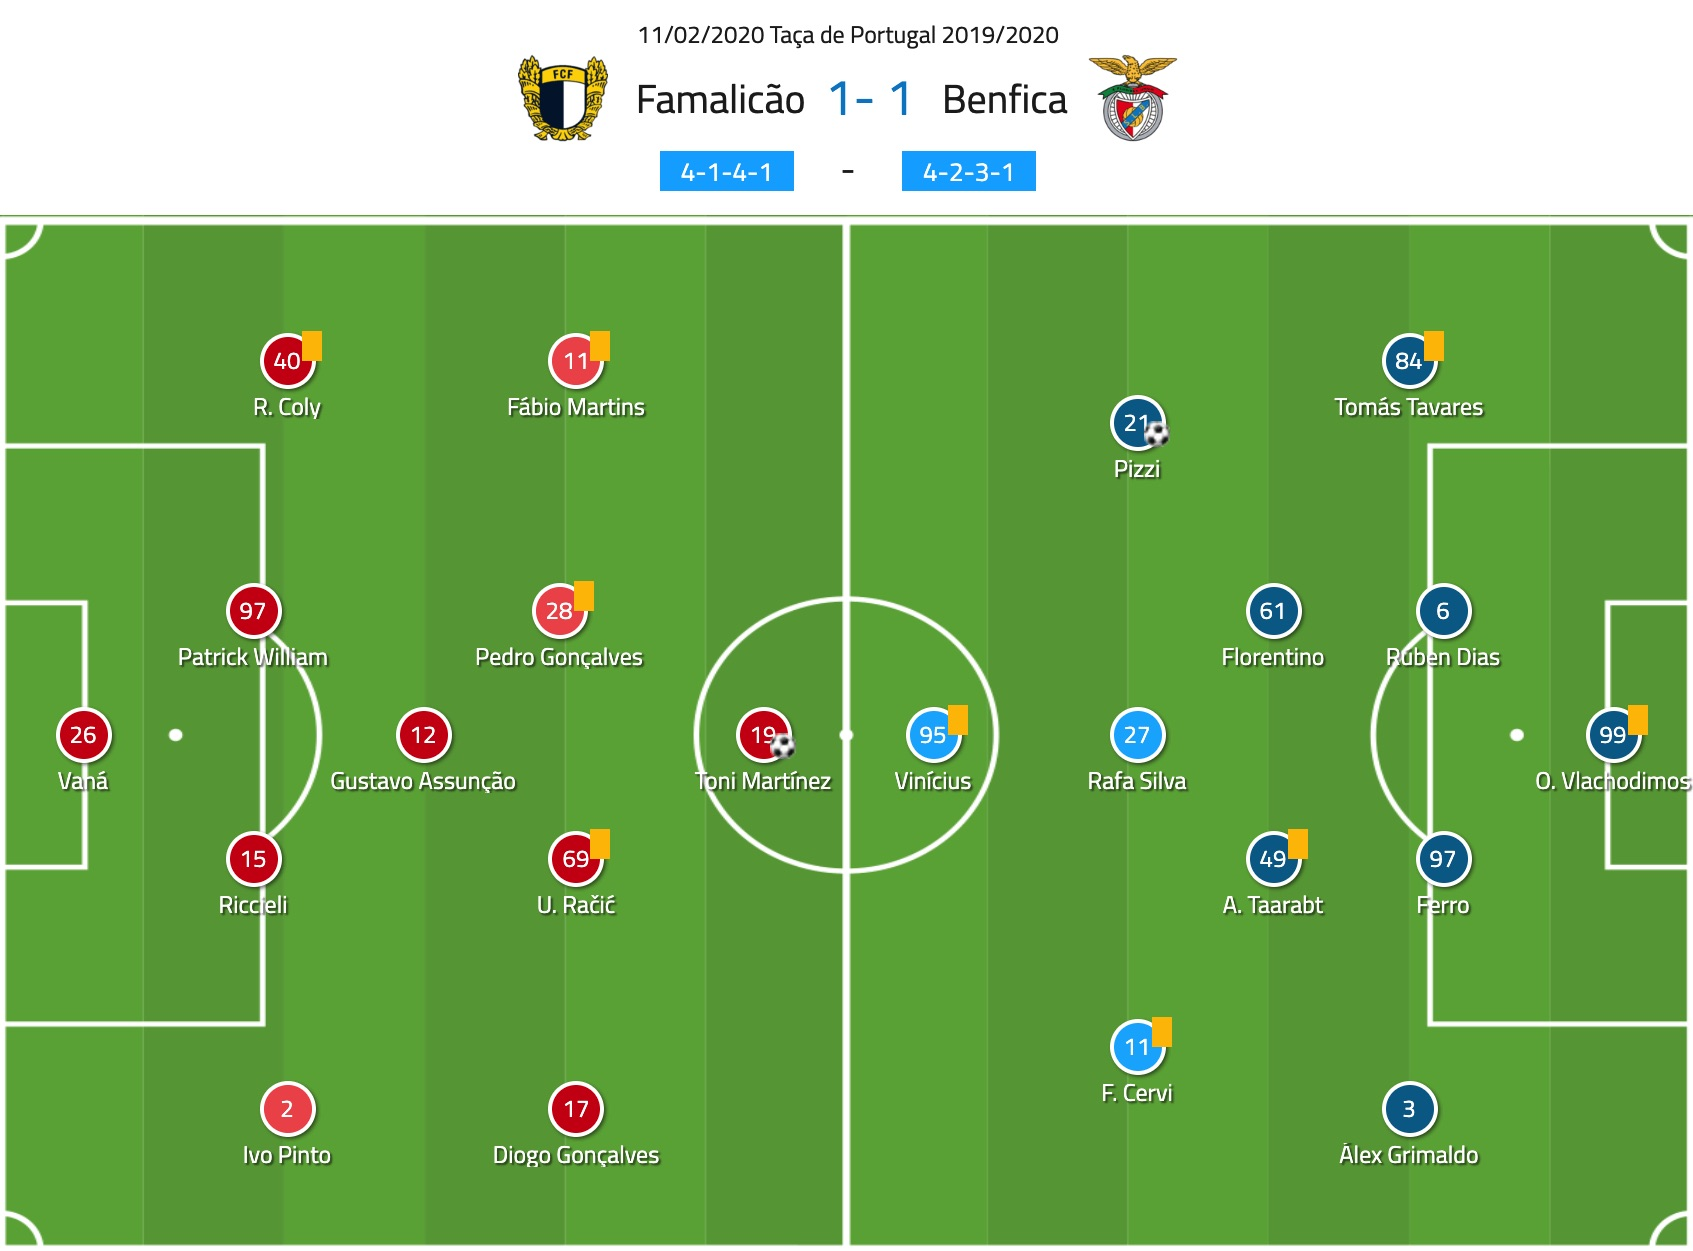 taca-de-portugal-2019-20-famalicao-vs-benfica-tactical-analysis-tactics